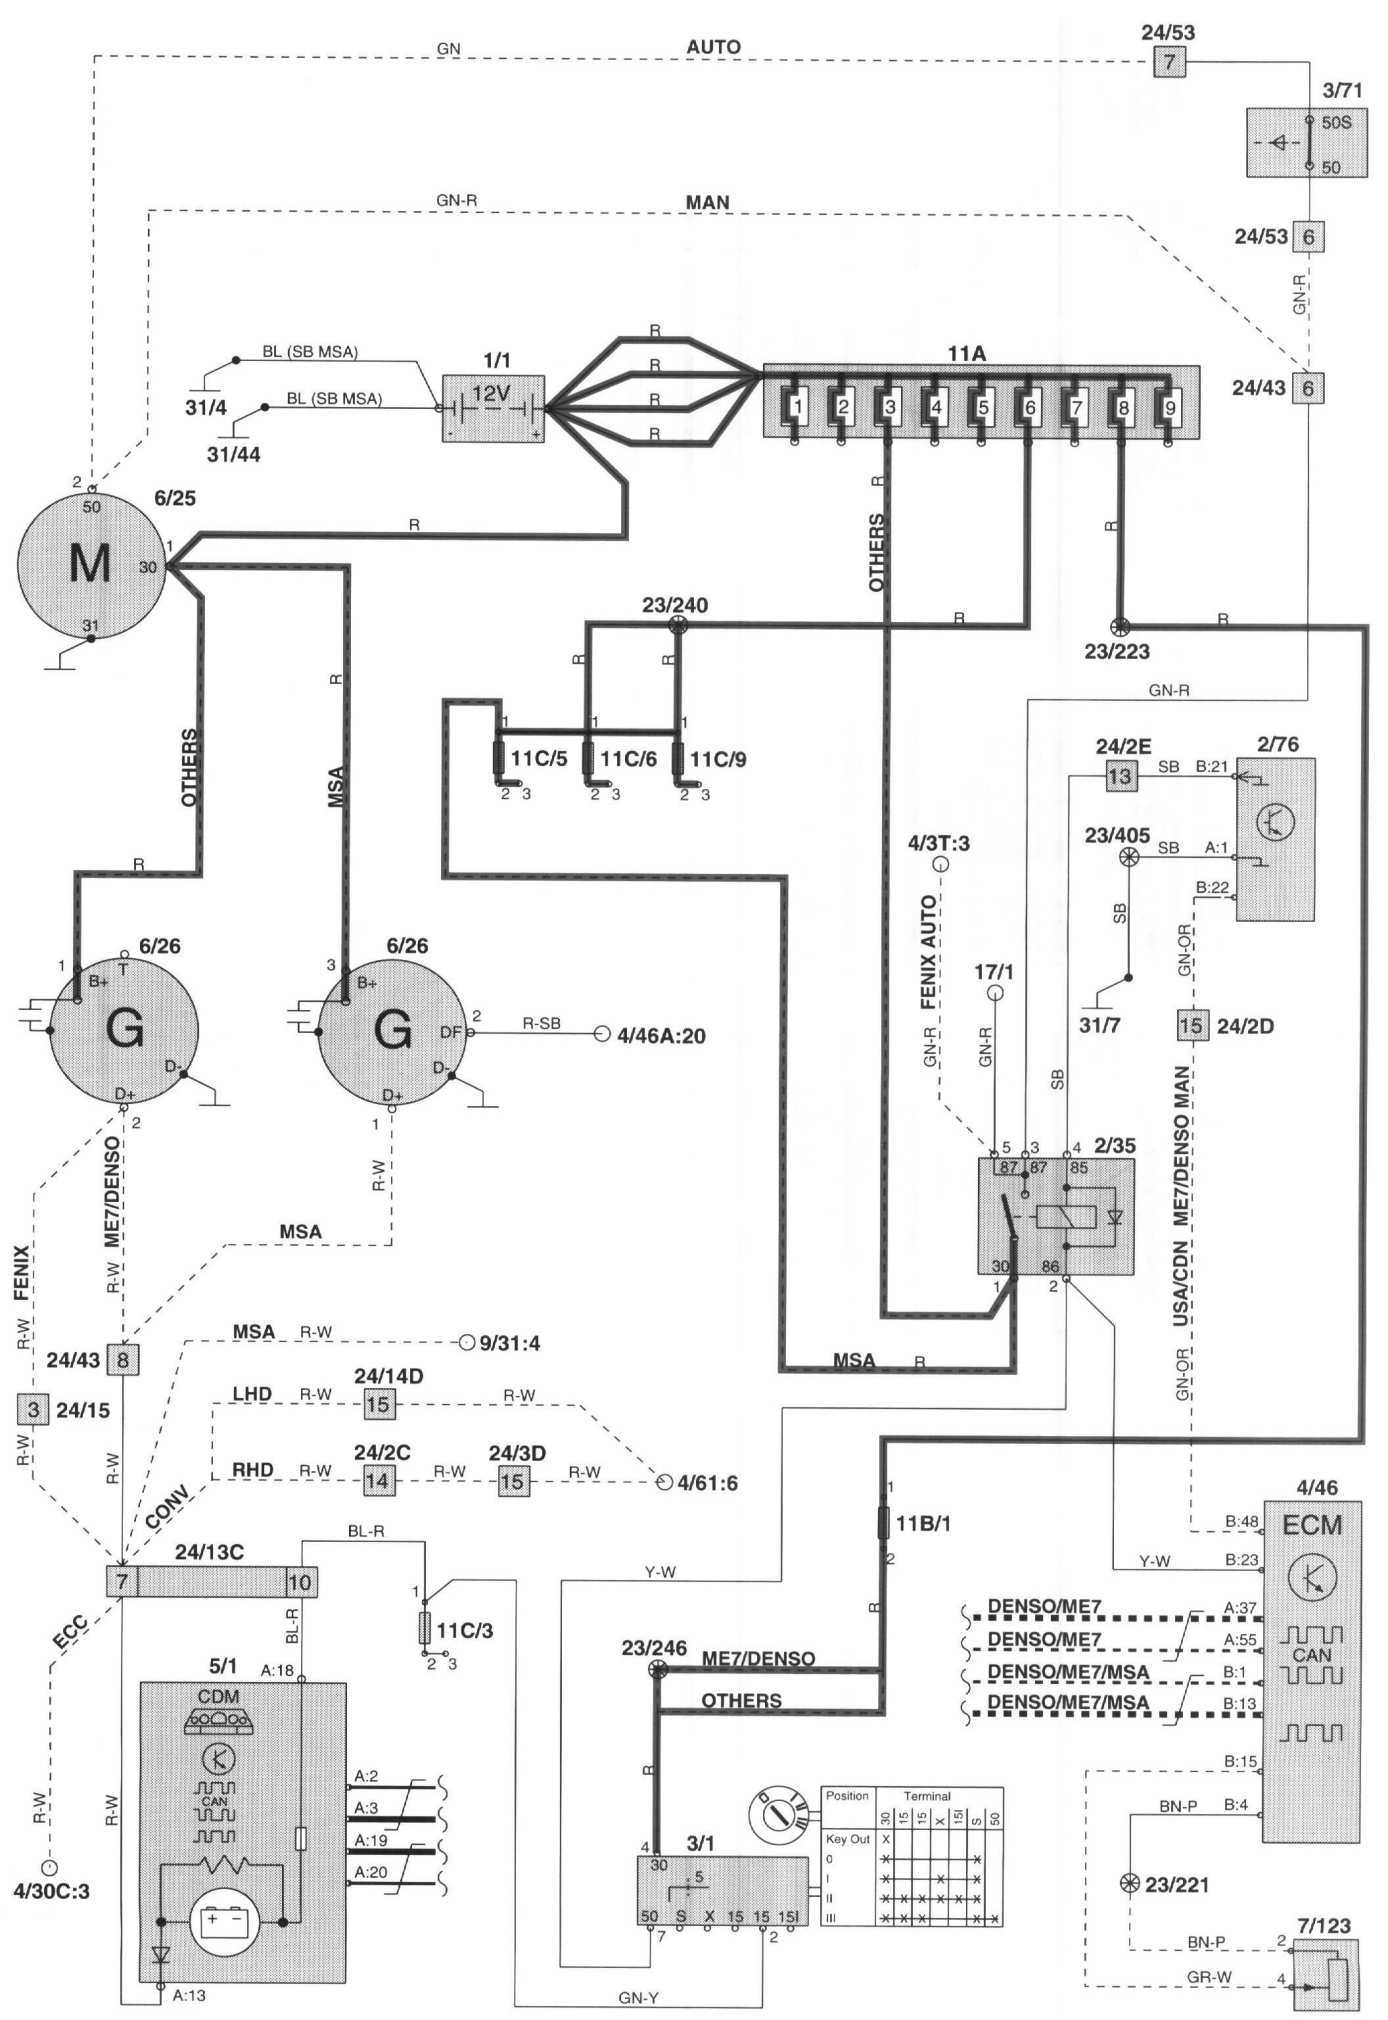 1999 Volvo V70 Wiring Diagram